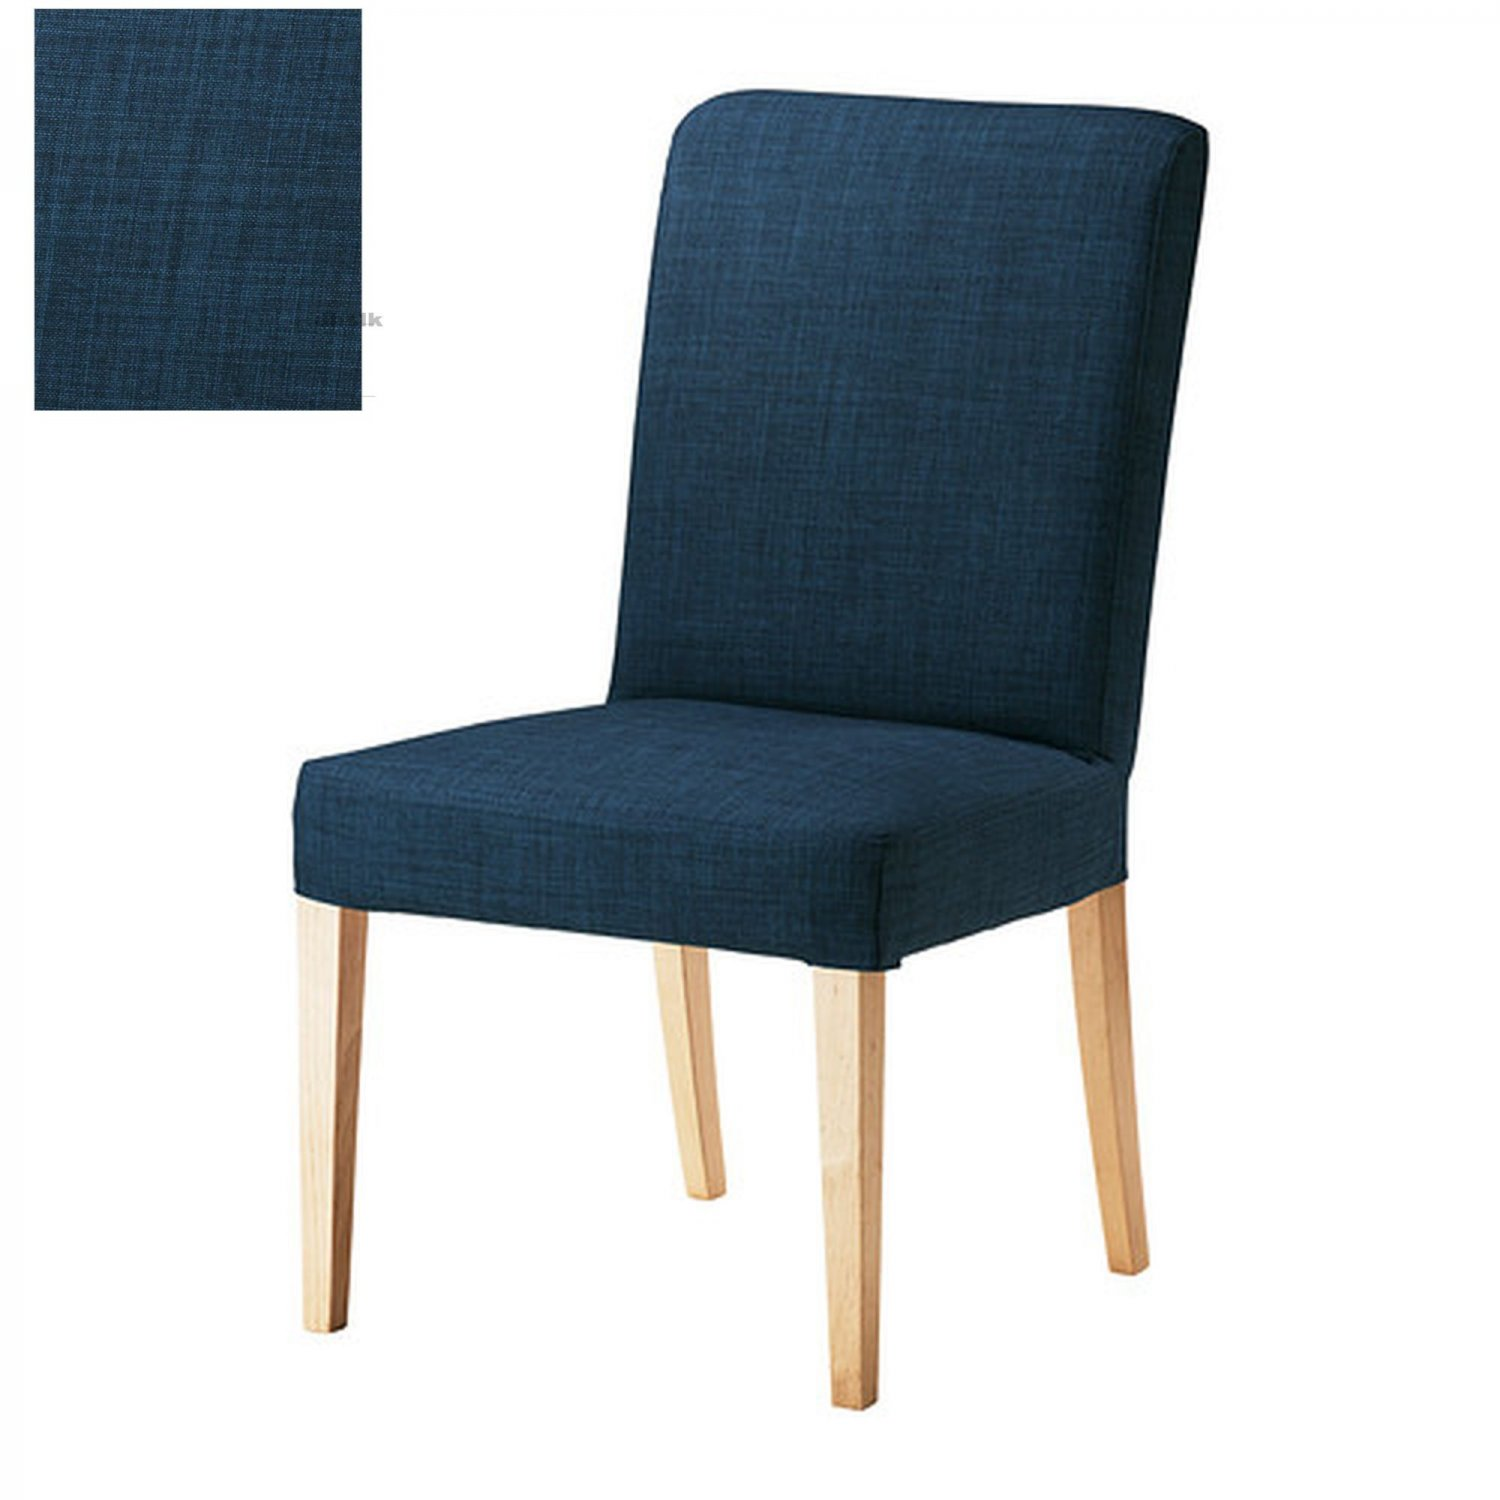 ikea henriksdal skiftebo chair slipcover cover 21 54cm blue. Black Bedroom Furniture Sets. Home Design Ideas